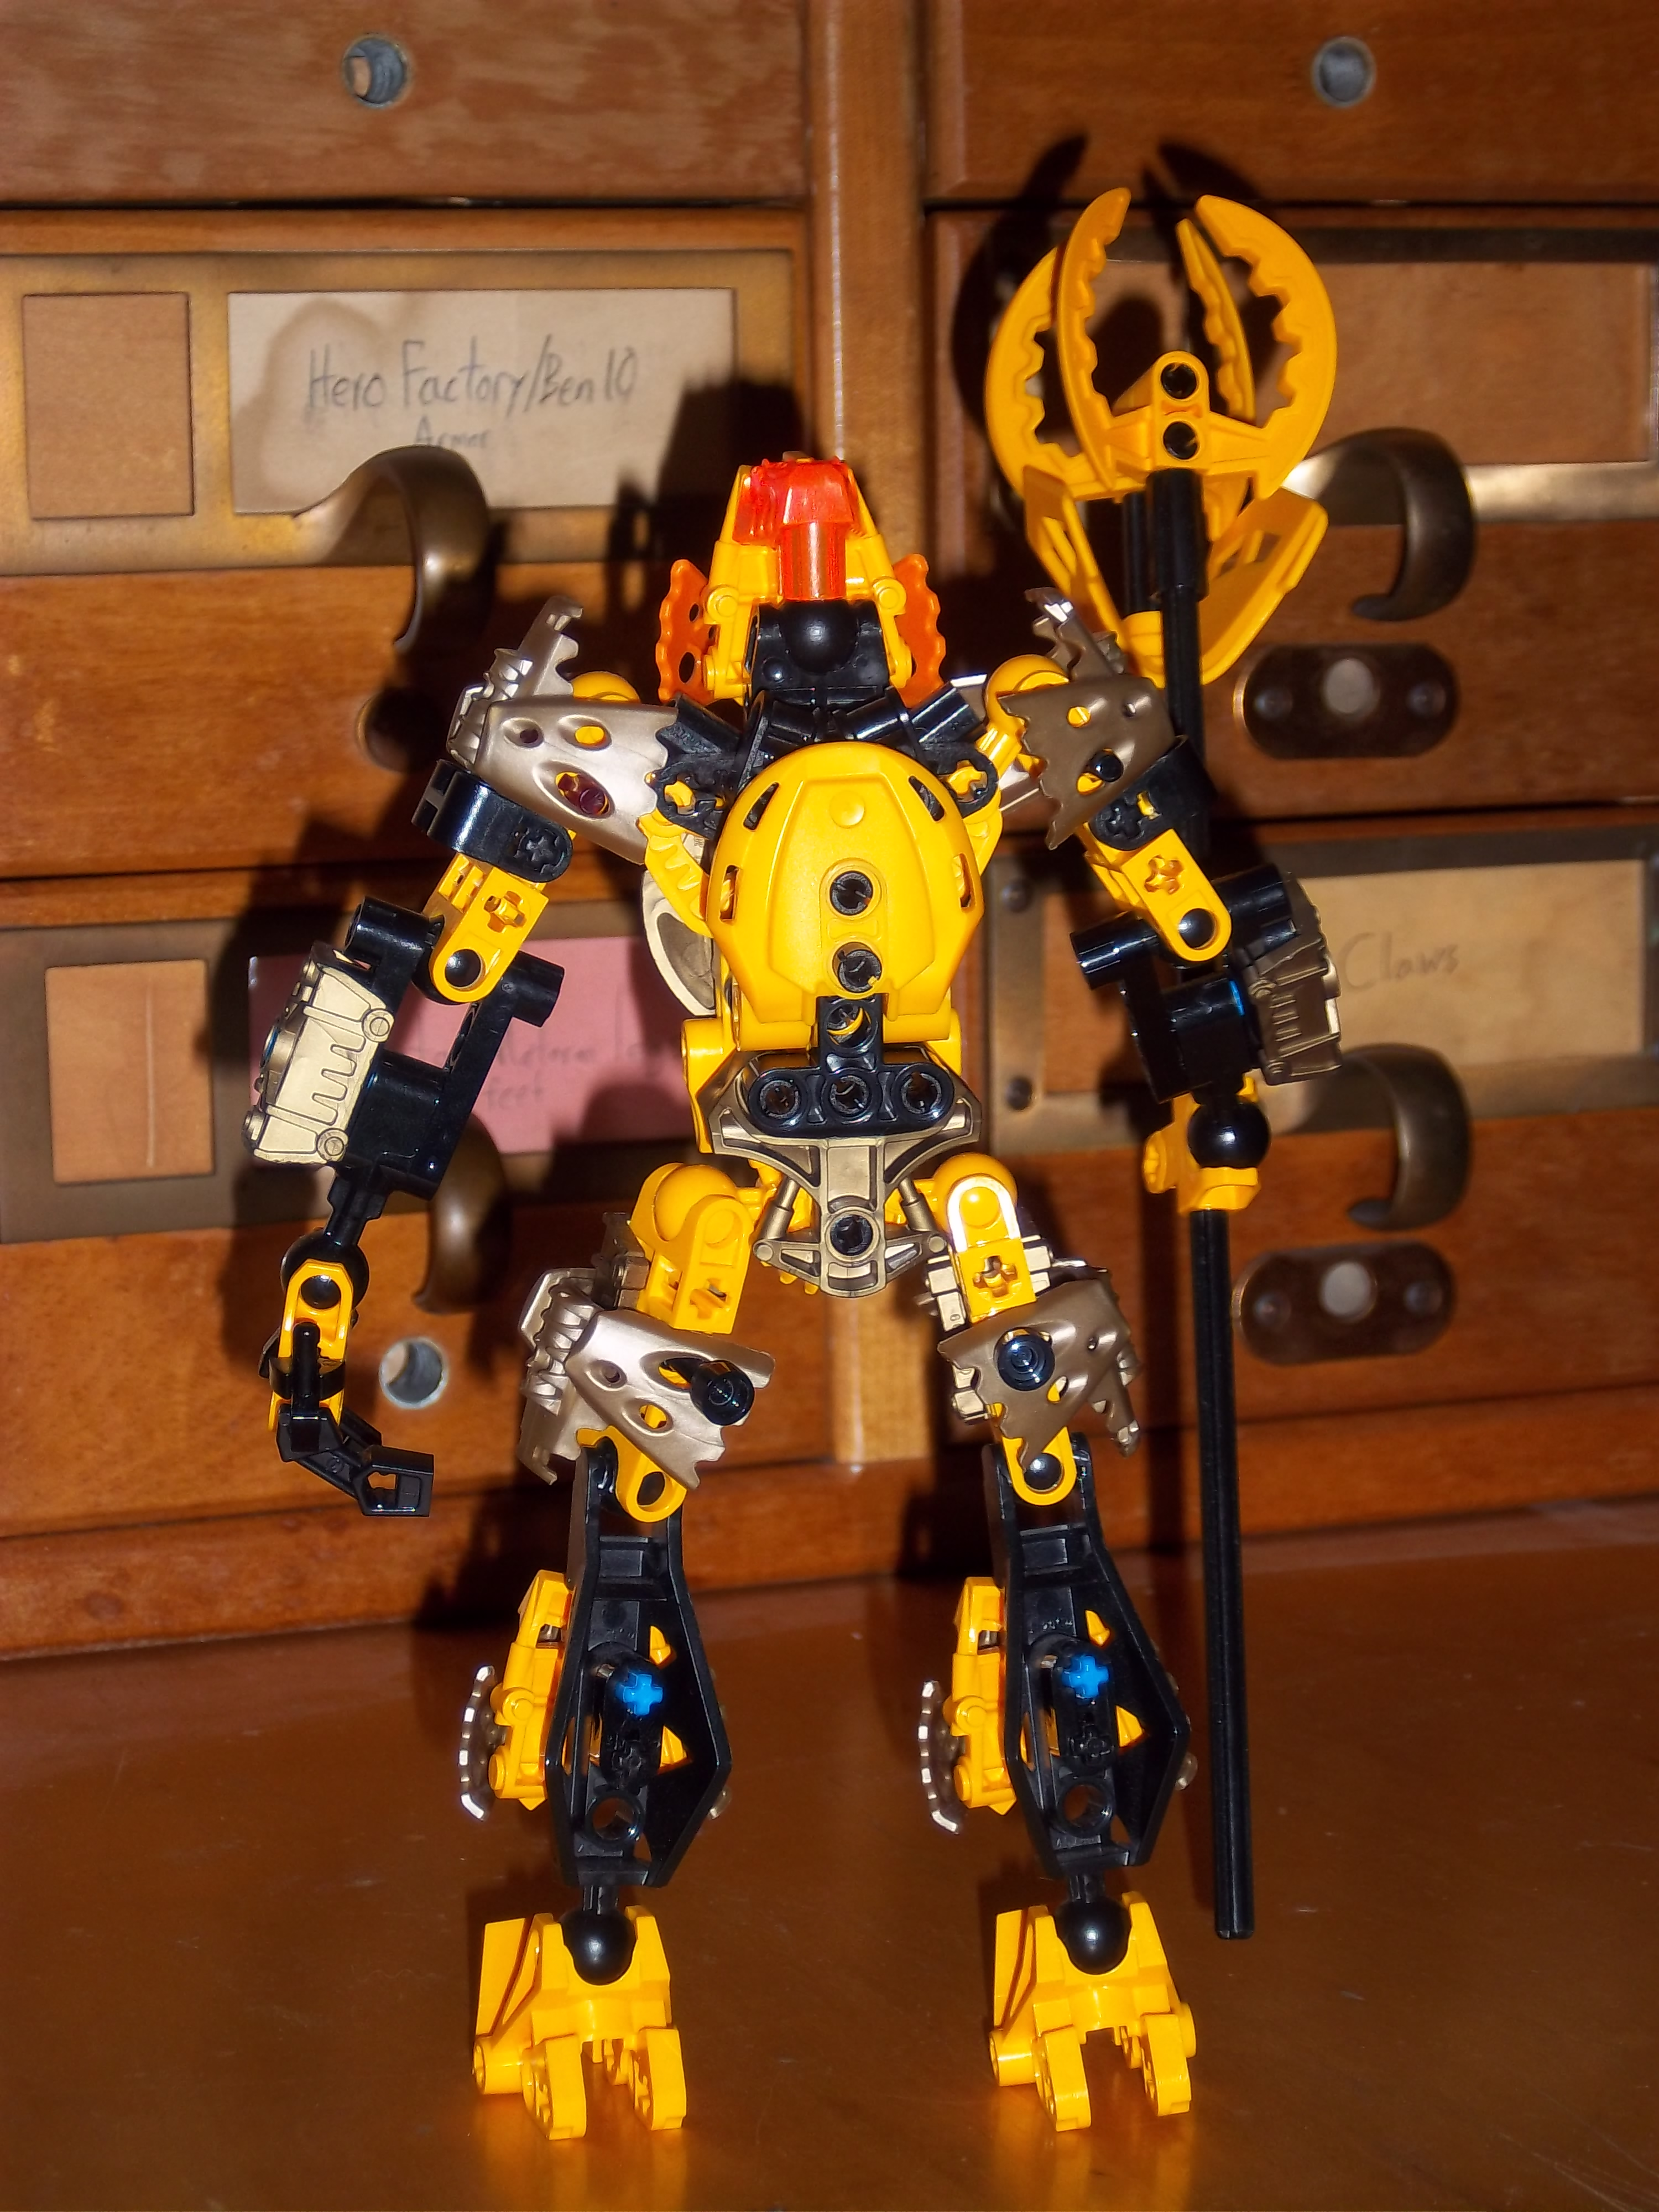 new_toa_of_time_pics_008.jpg